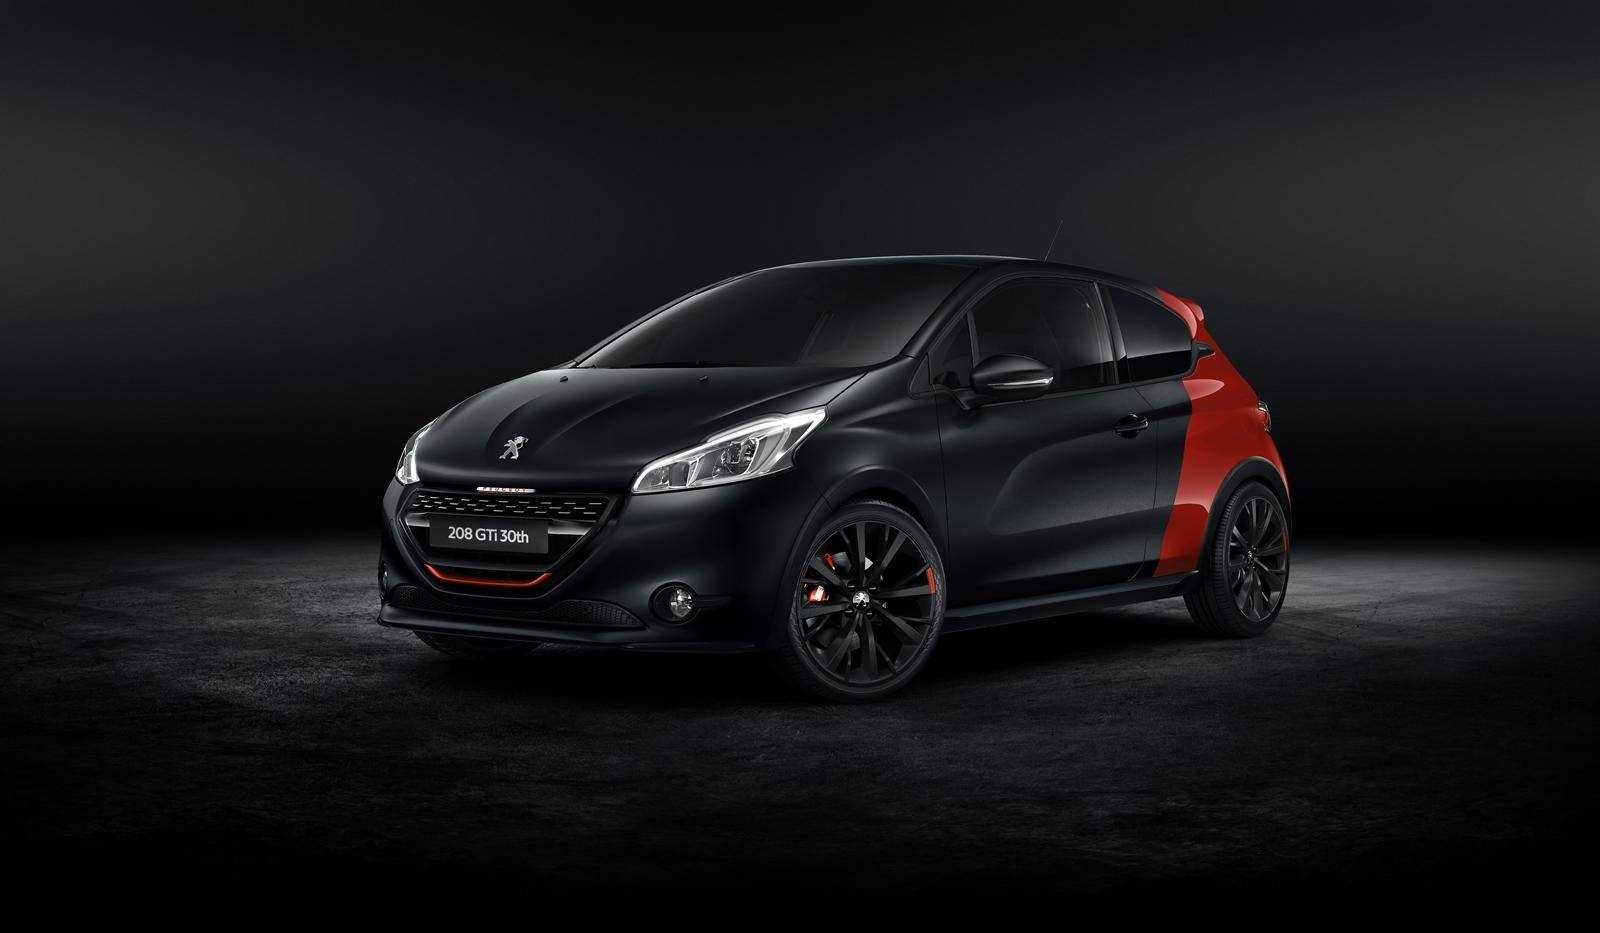 peugeot 208 gti 30th edition kost ruim 30 mille autonieuws. Black Bedroom Furniture Sets. Home Design Ideas